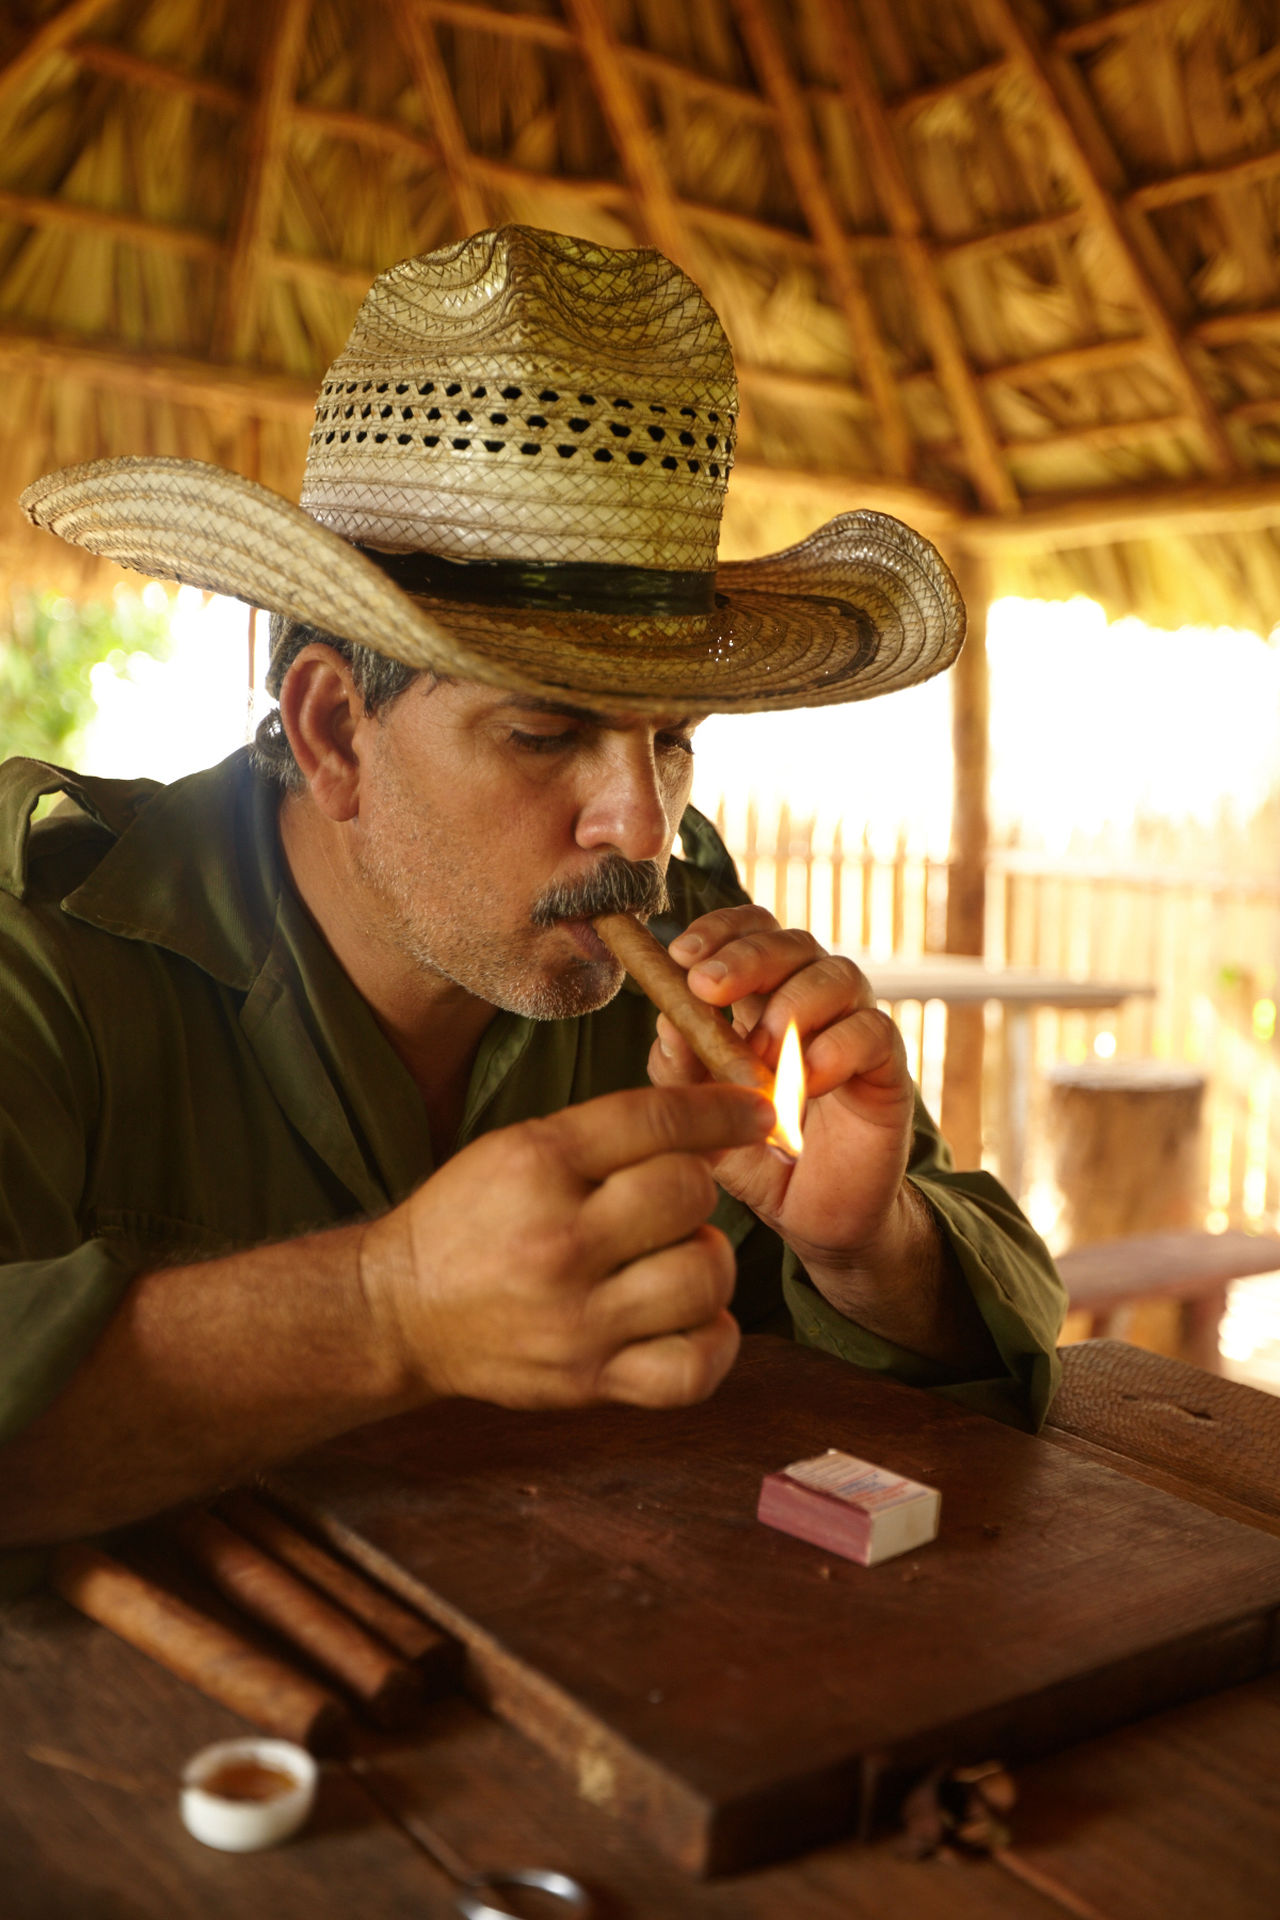 Adult Adults Only Cigar Close-up Countryside Cuban Cigar Cuban Life Day Headshot Holding Indoors  Mature Adult Mature Men One Man Only One Person People Real People Sitting Table Tobacco Leaf